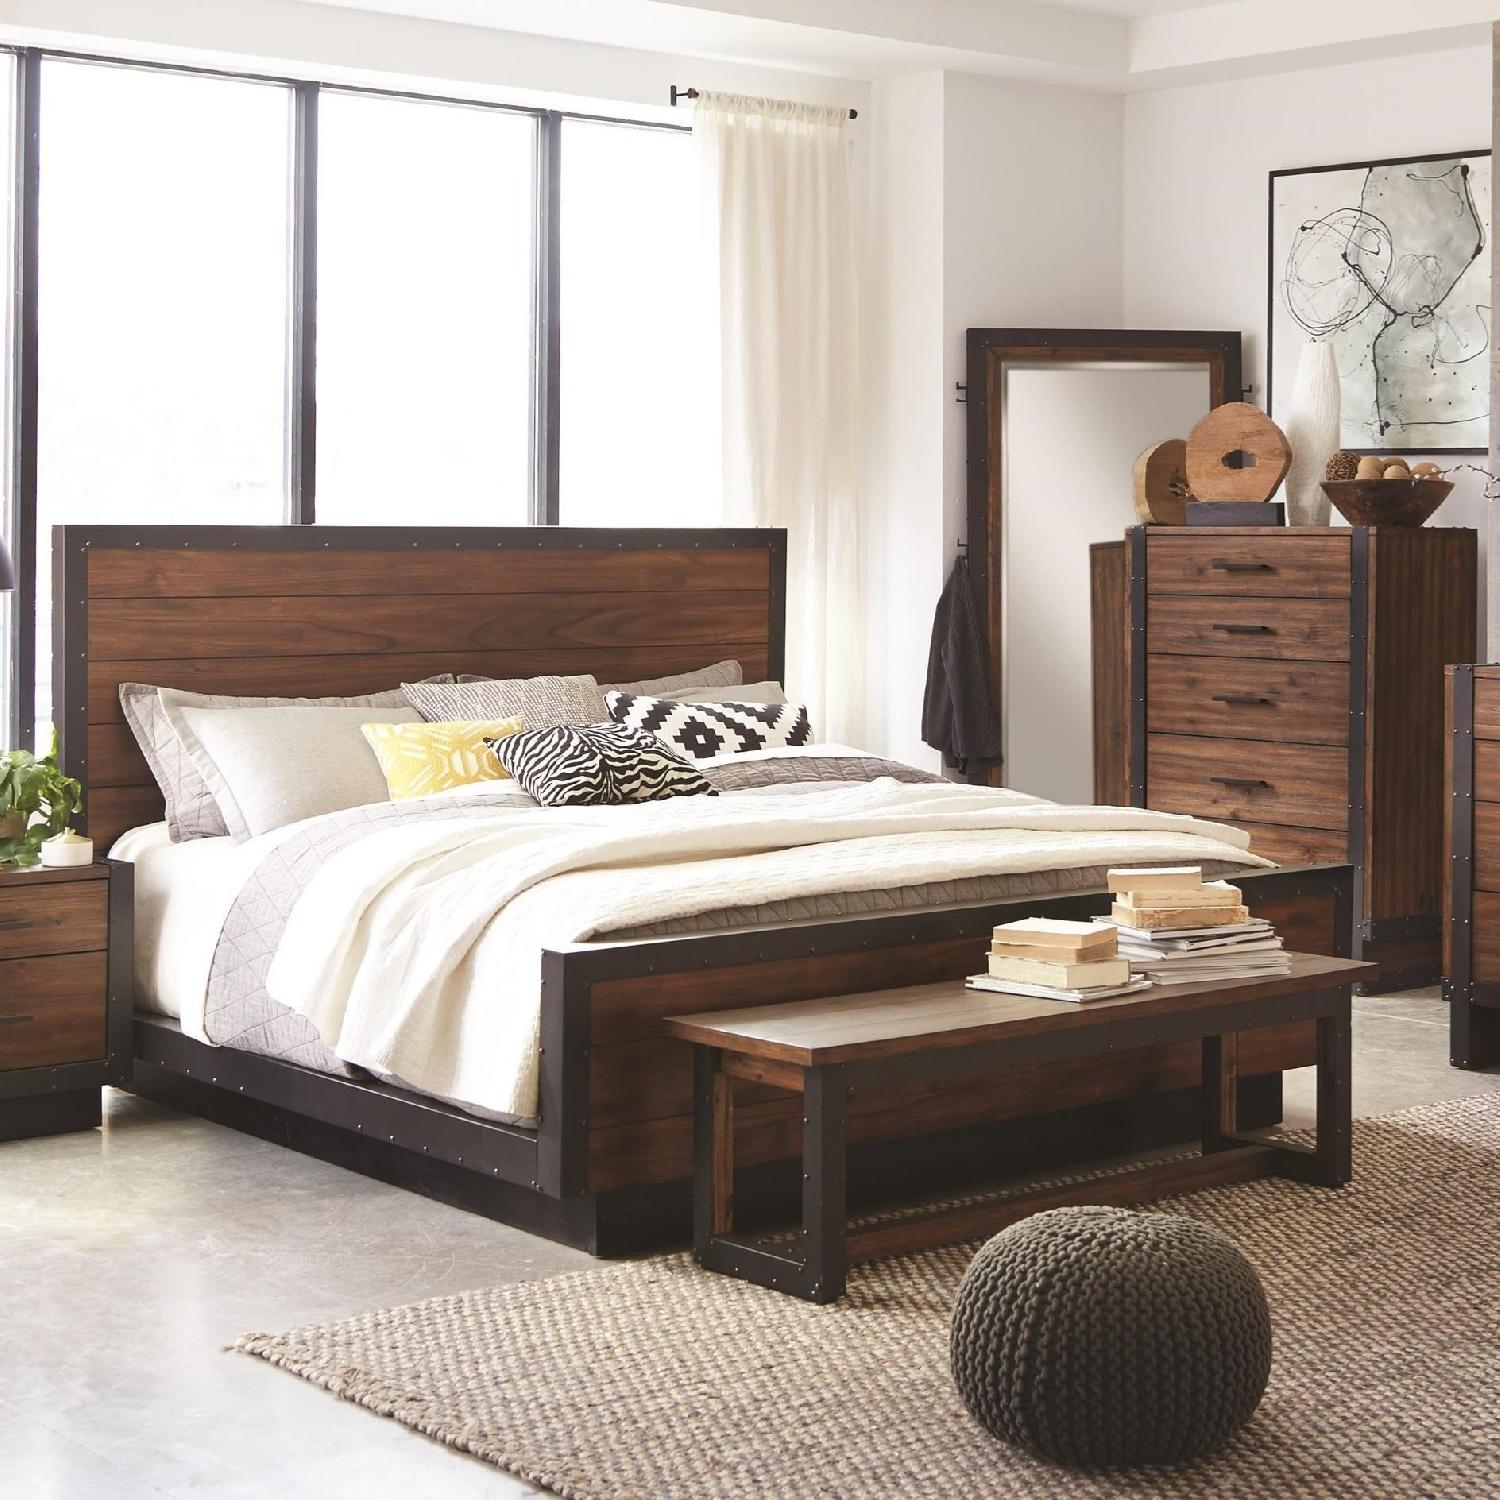 Industrial Rustic Modern King Size Bed in Bourbon Brown